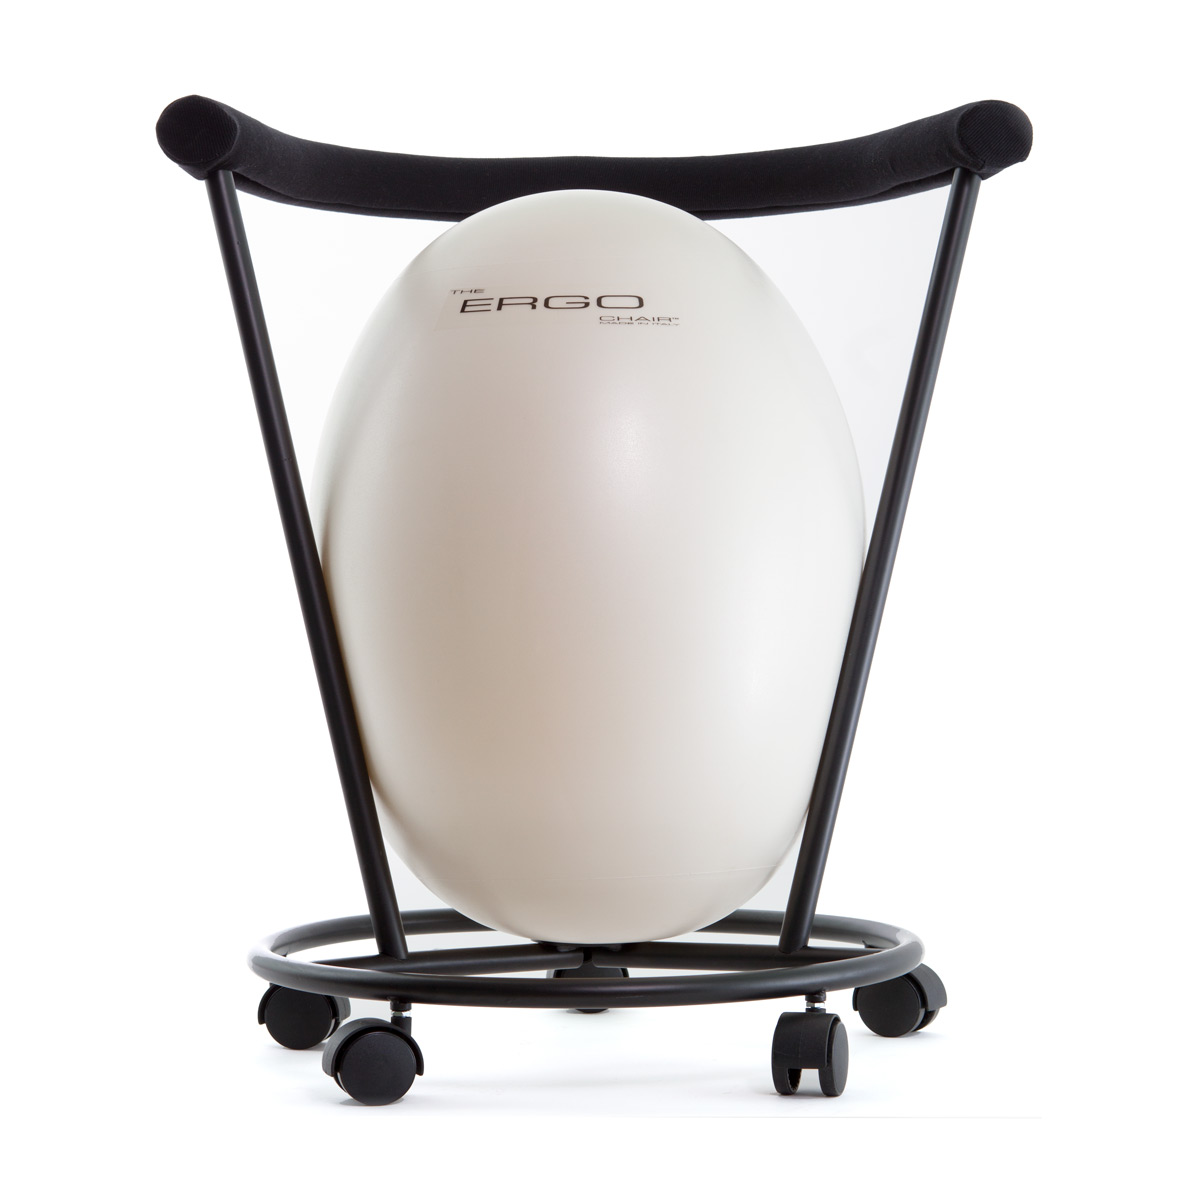 Ergo Chair Ergonomic Ball Chair The Ergo Chair